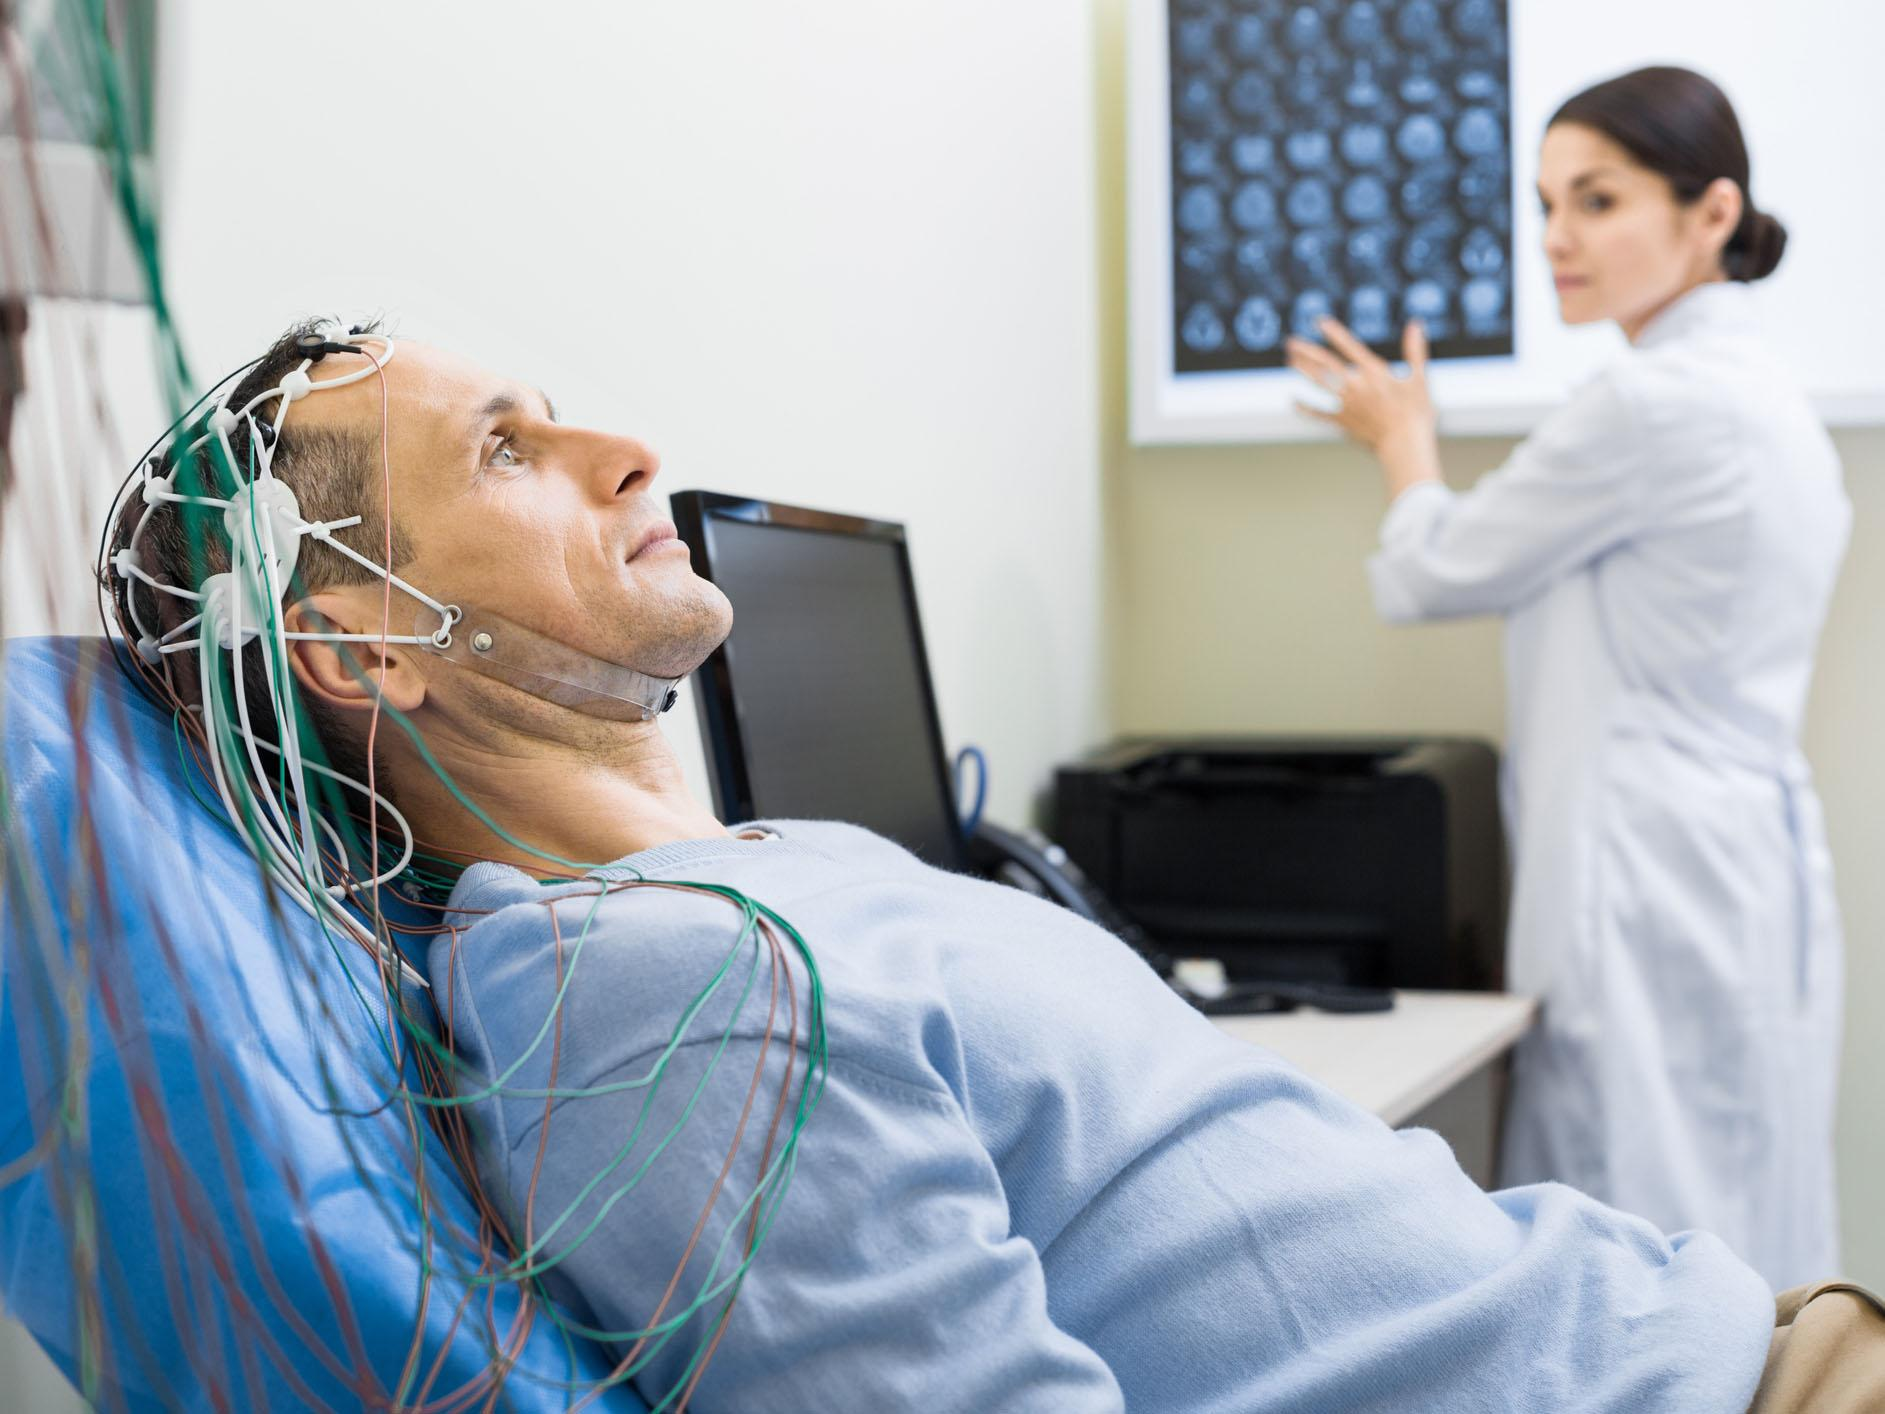 Electric shocks delivered to the brain restore youthful memory to older adults, experiment shows